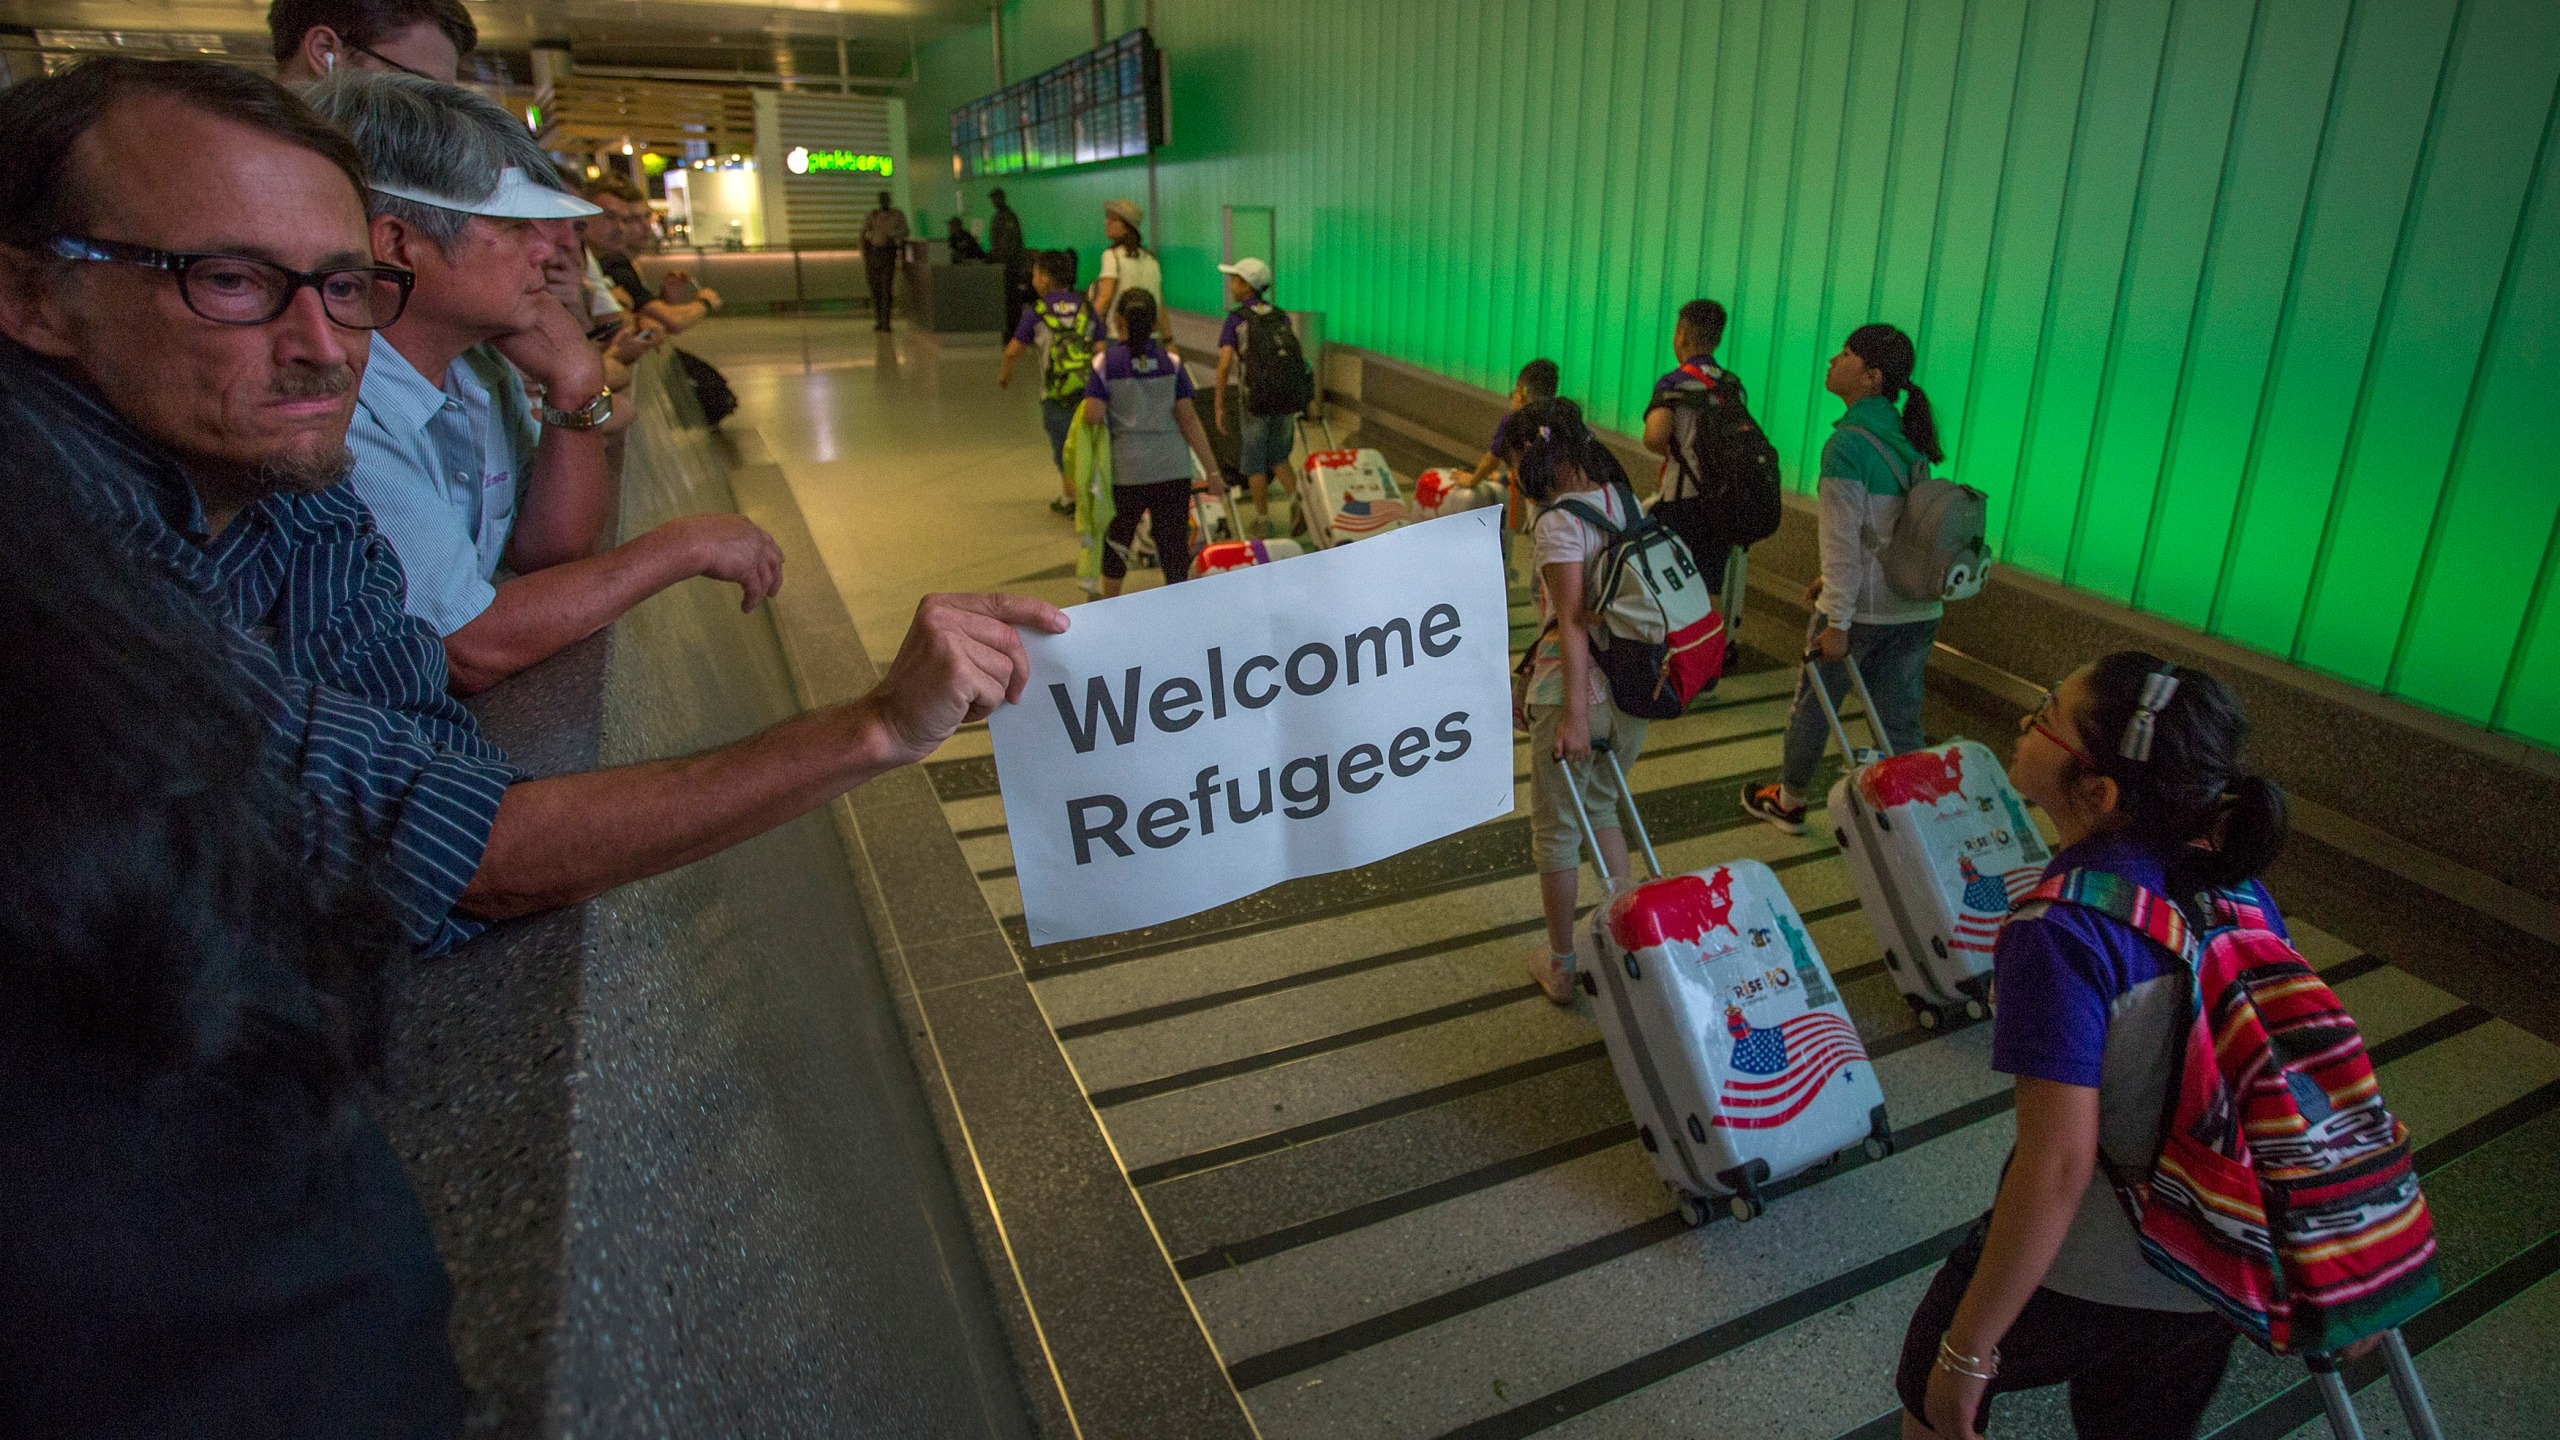 A man carries a welcome sign near arriving international travelers at LAX on the first day of the partial reinstatement of Trump's travel ban on June 29, 2017 in Los Angeles. (David McNew/Getty Images)